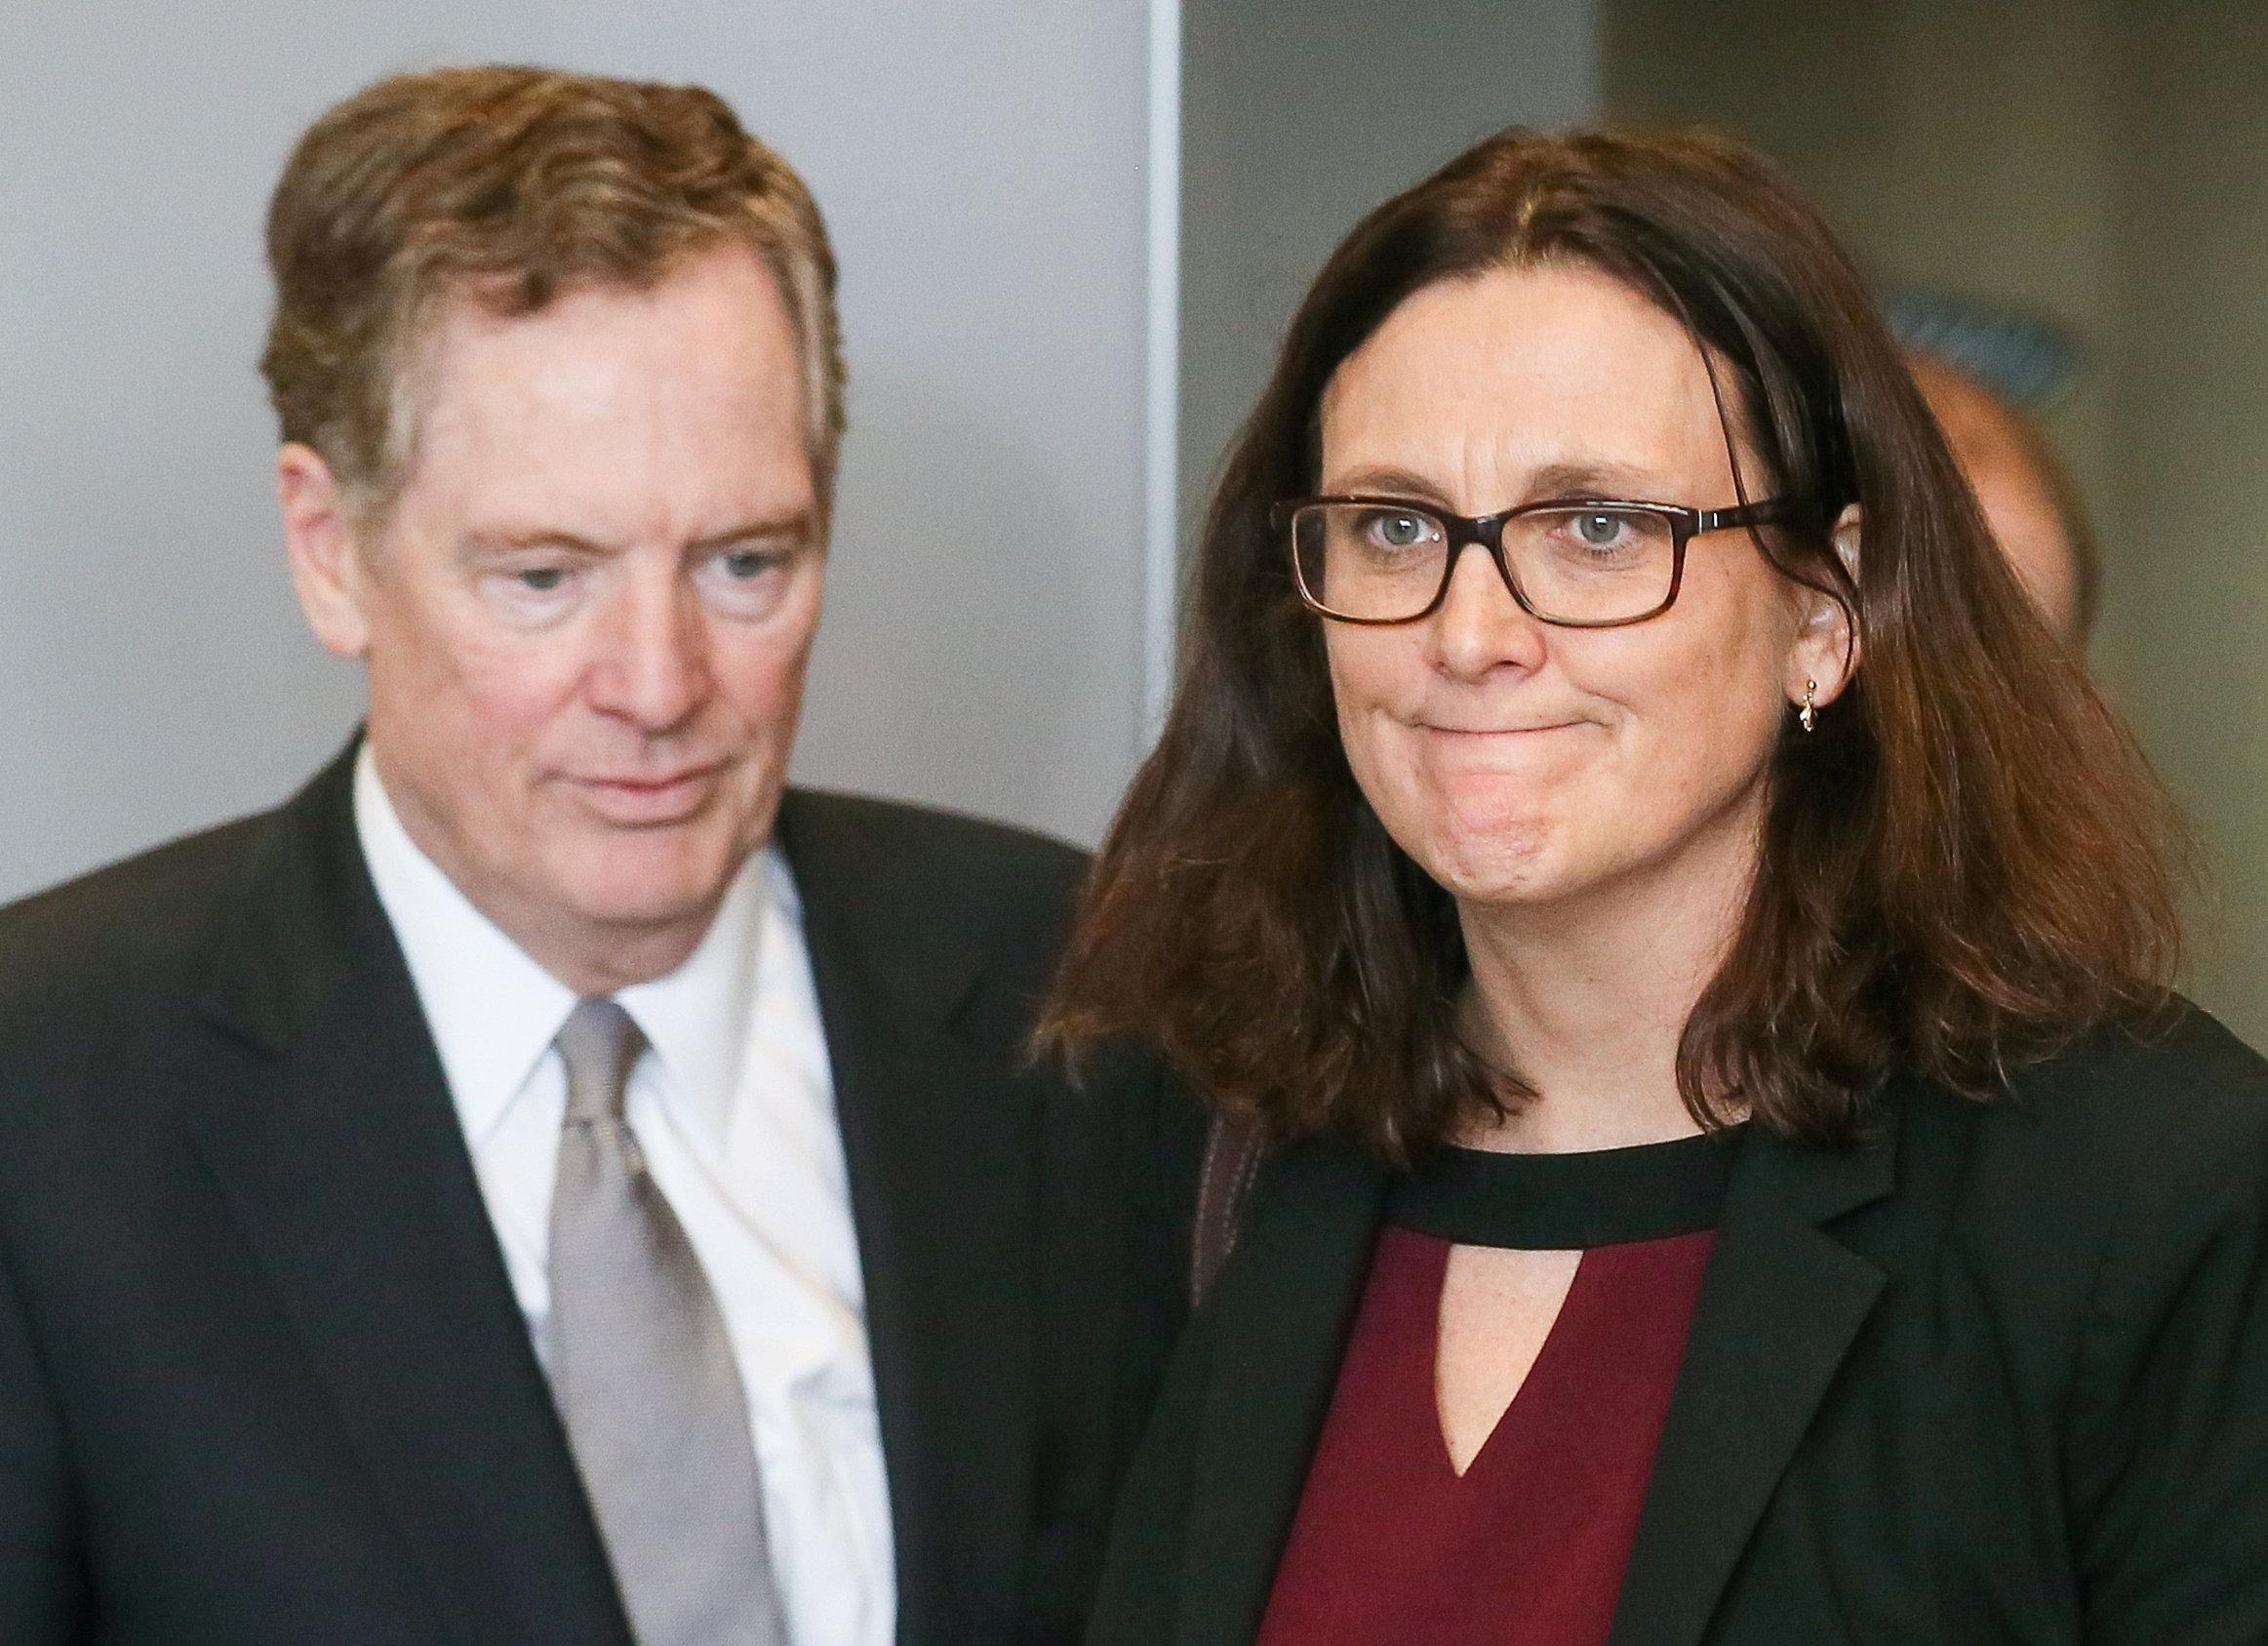 U.S. Trade Representative Robert Lighthizer and European Trade Commissioner Cecilia Malmstrom take part in a meeting to discuss steel overcapacity, in Brussels, Belgium March 10, 2018. Stephanie Lecocq/Pool